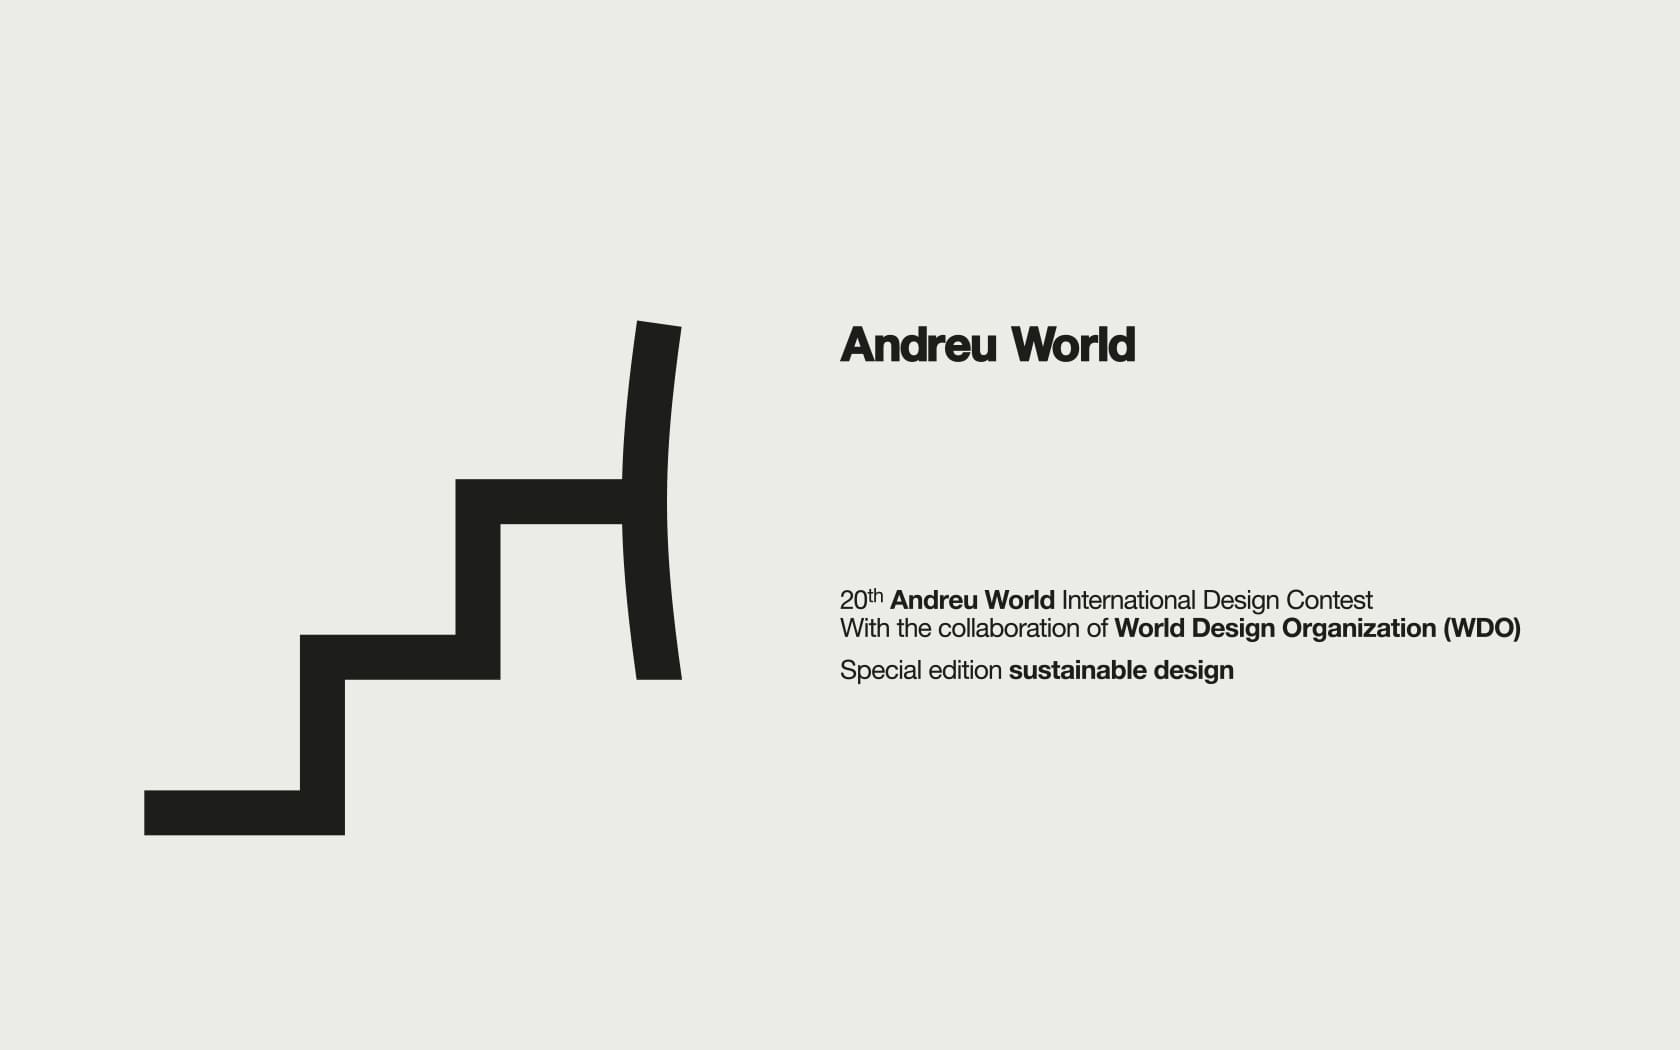 AW Design Competition 2020